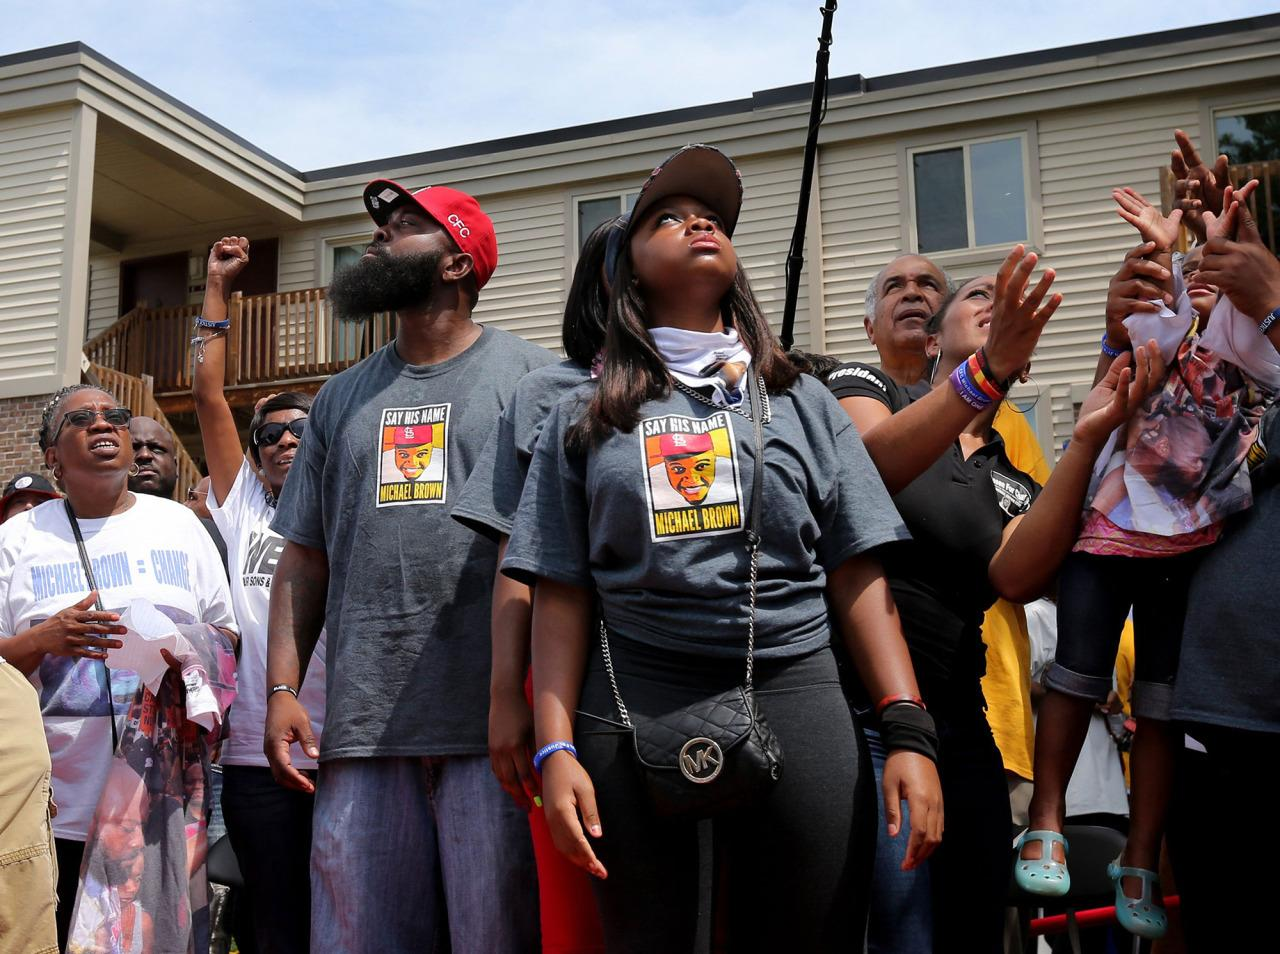 <p>MMichael Brown, Sr. center left, watches as white doves fly away after a moment of silence during a ceremony marking the two-year anniversary of his son's shooting death, Tuesday, Aug. 9, 2016 in Ferguson, Mo. (Christian Gooden/St. Louis Post-Dispatch via AP)</p>